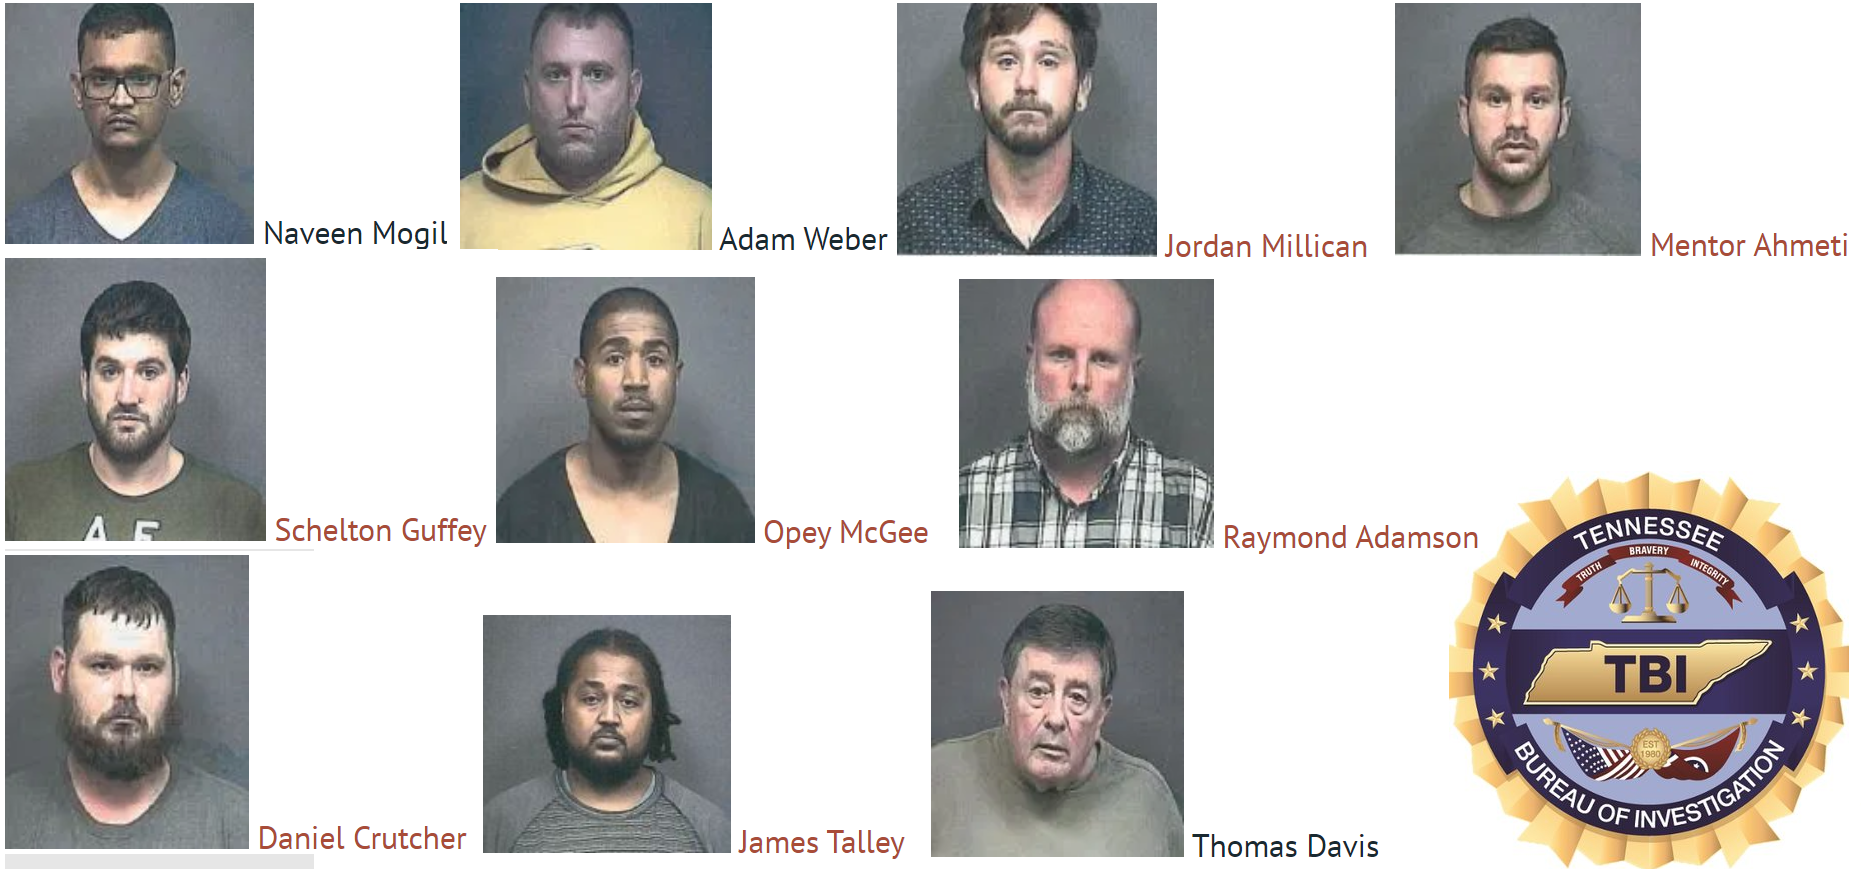 A two-day undercover operation by Special Agents with the TBI Human Trafficking Unit has resulted in the arrest of several men, including three who are charged with solicitation of a minor.